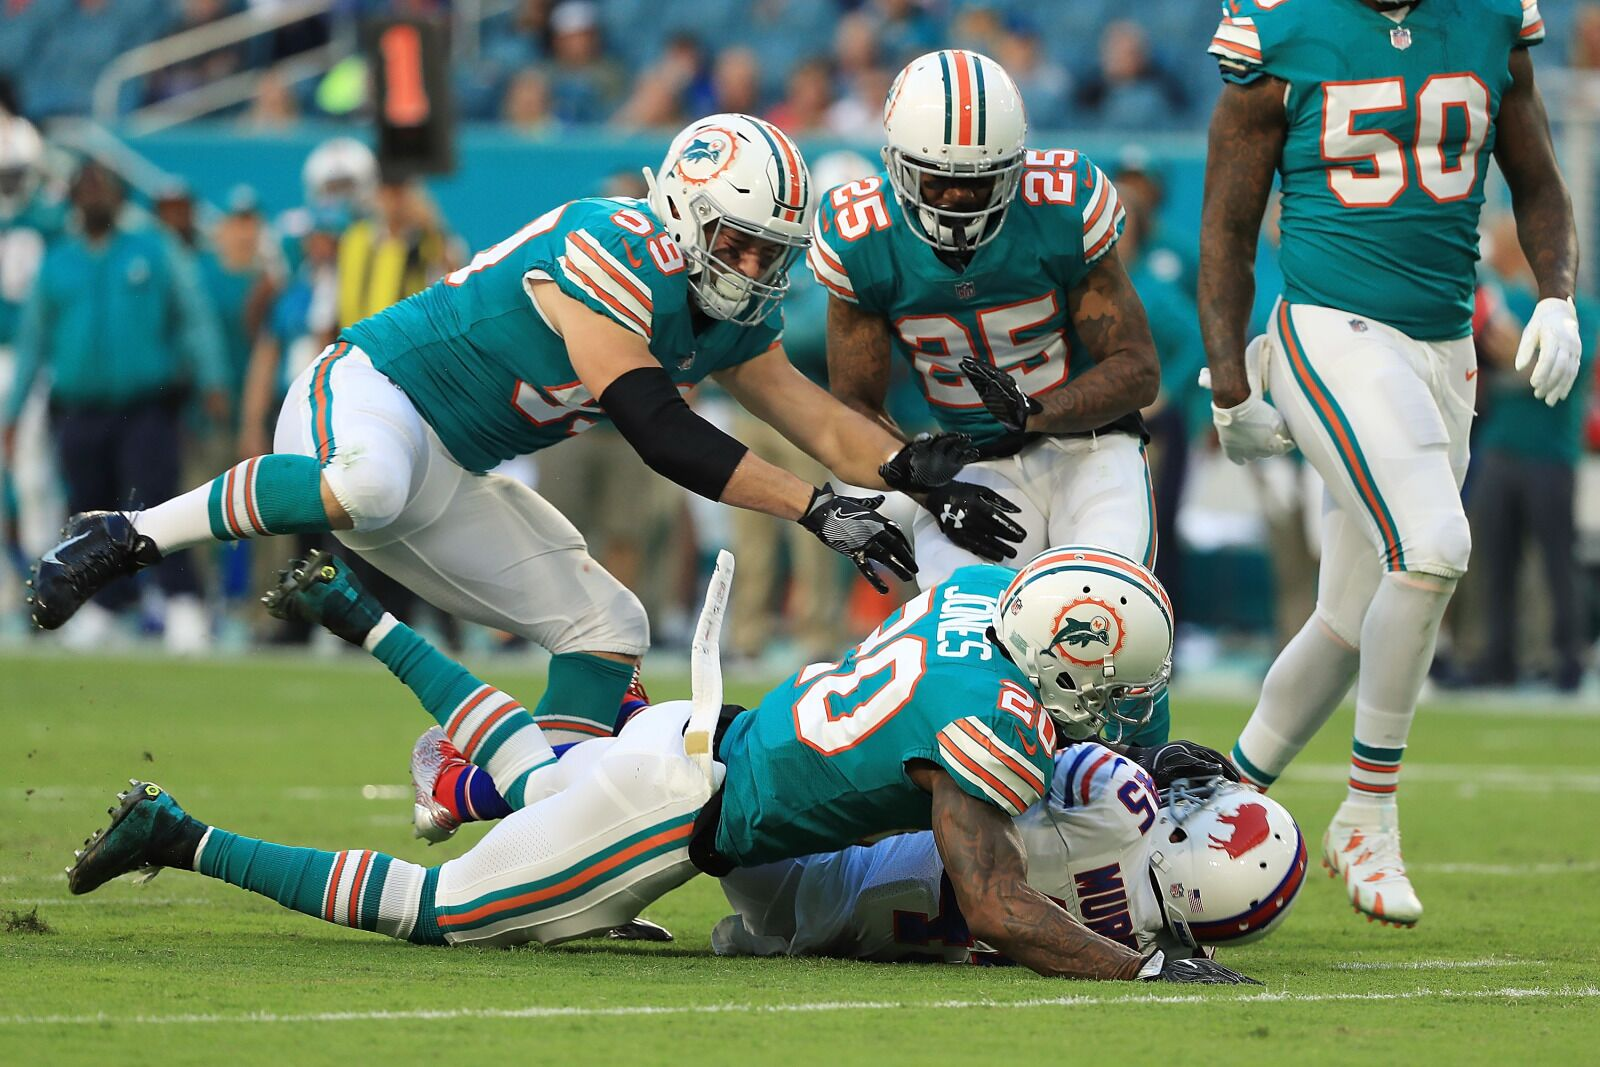 Miami Dolphins week five preview shows a lot of work for Dolphins